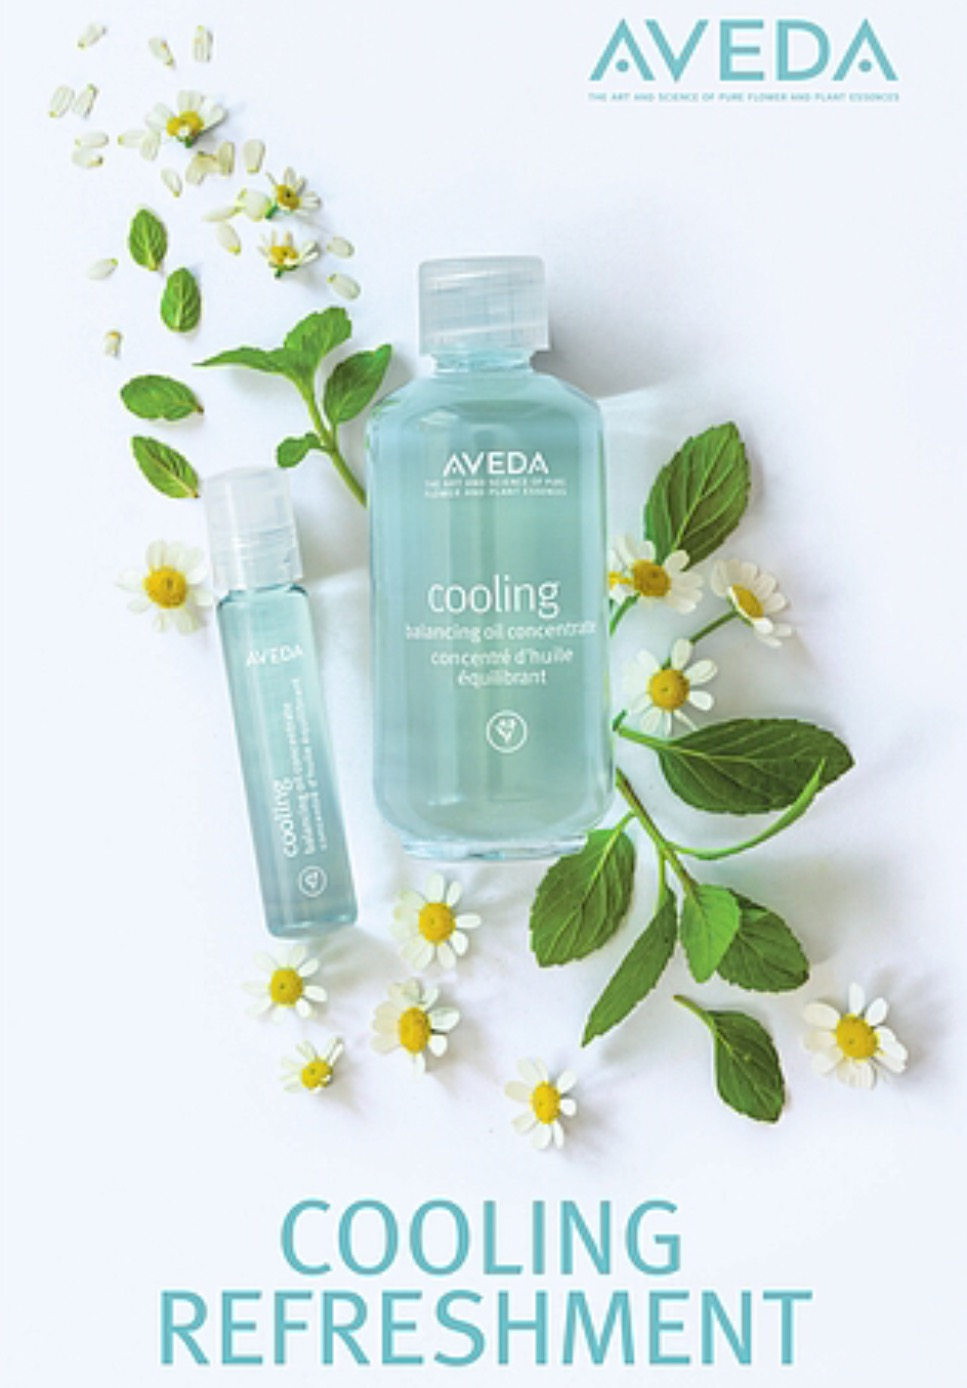 99.9% naturally derived from plants, non-petroleum minerals or water